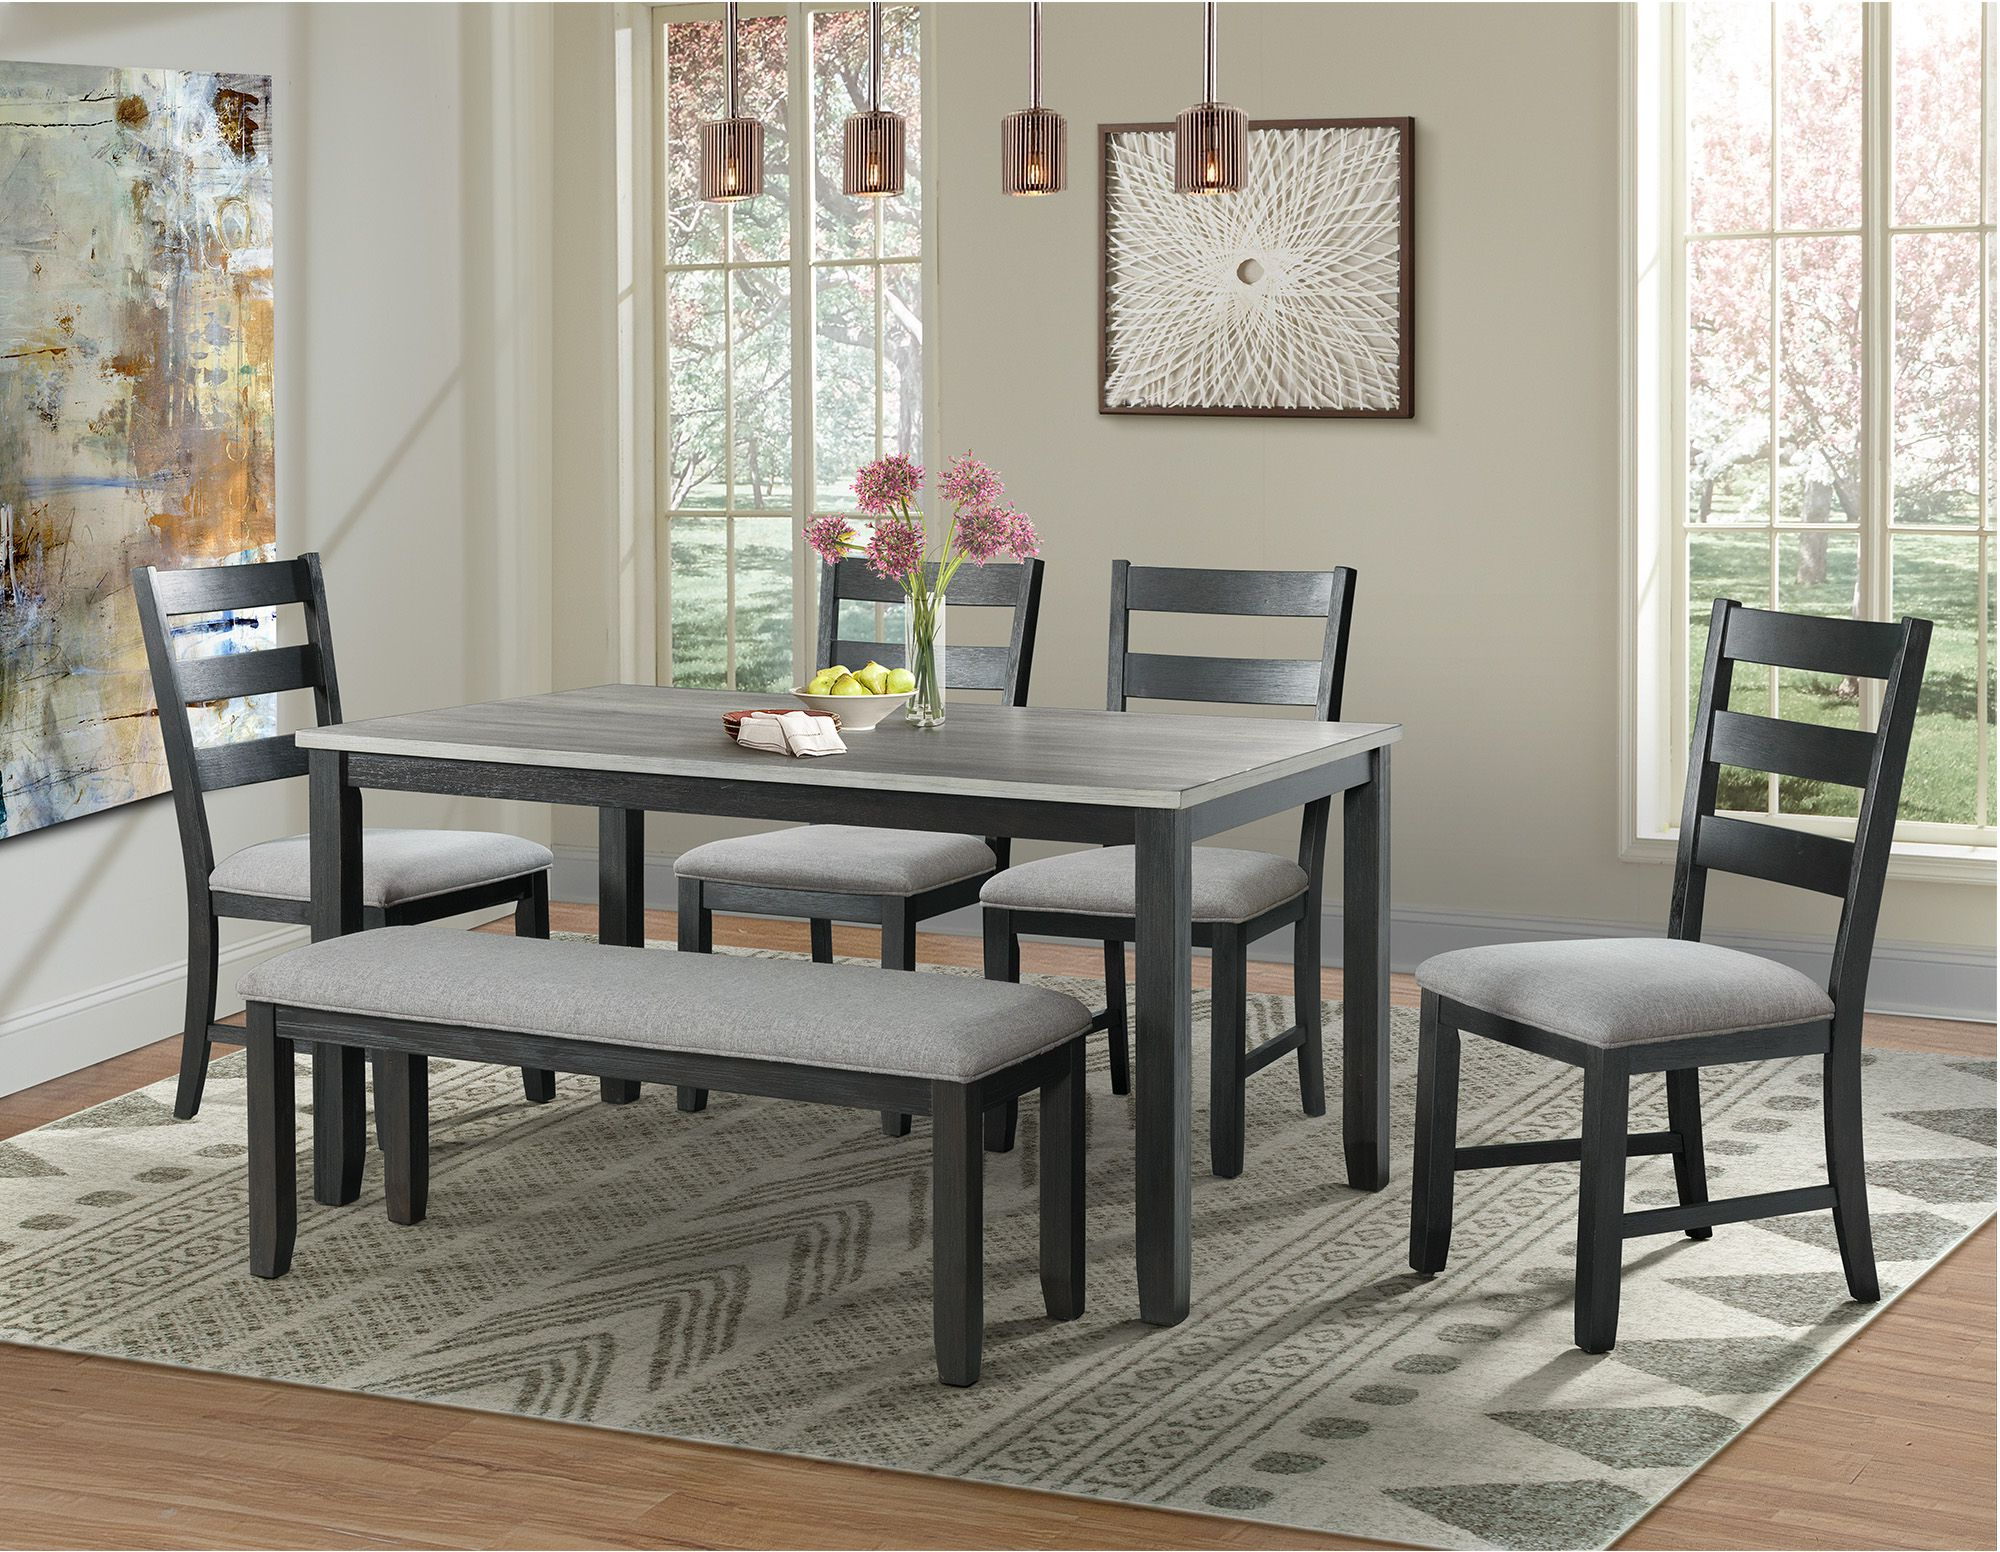 Kona Gray And Black 6 Piece Dining Room Set From Elements Furniture Pertaining To Well Liked Kinsler 3 Piece Bistro Sets (Gallery 19 of 25)